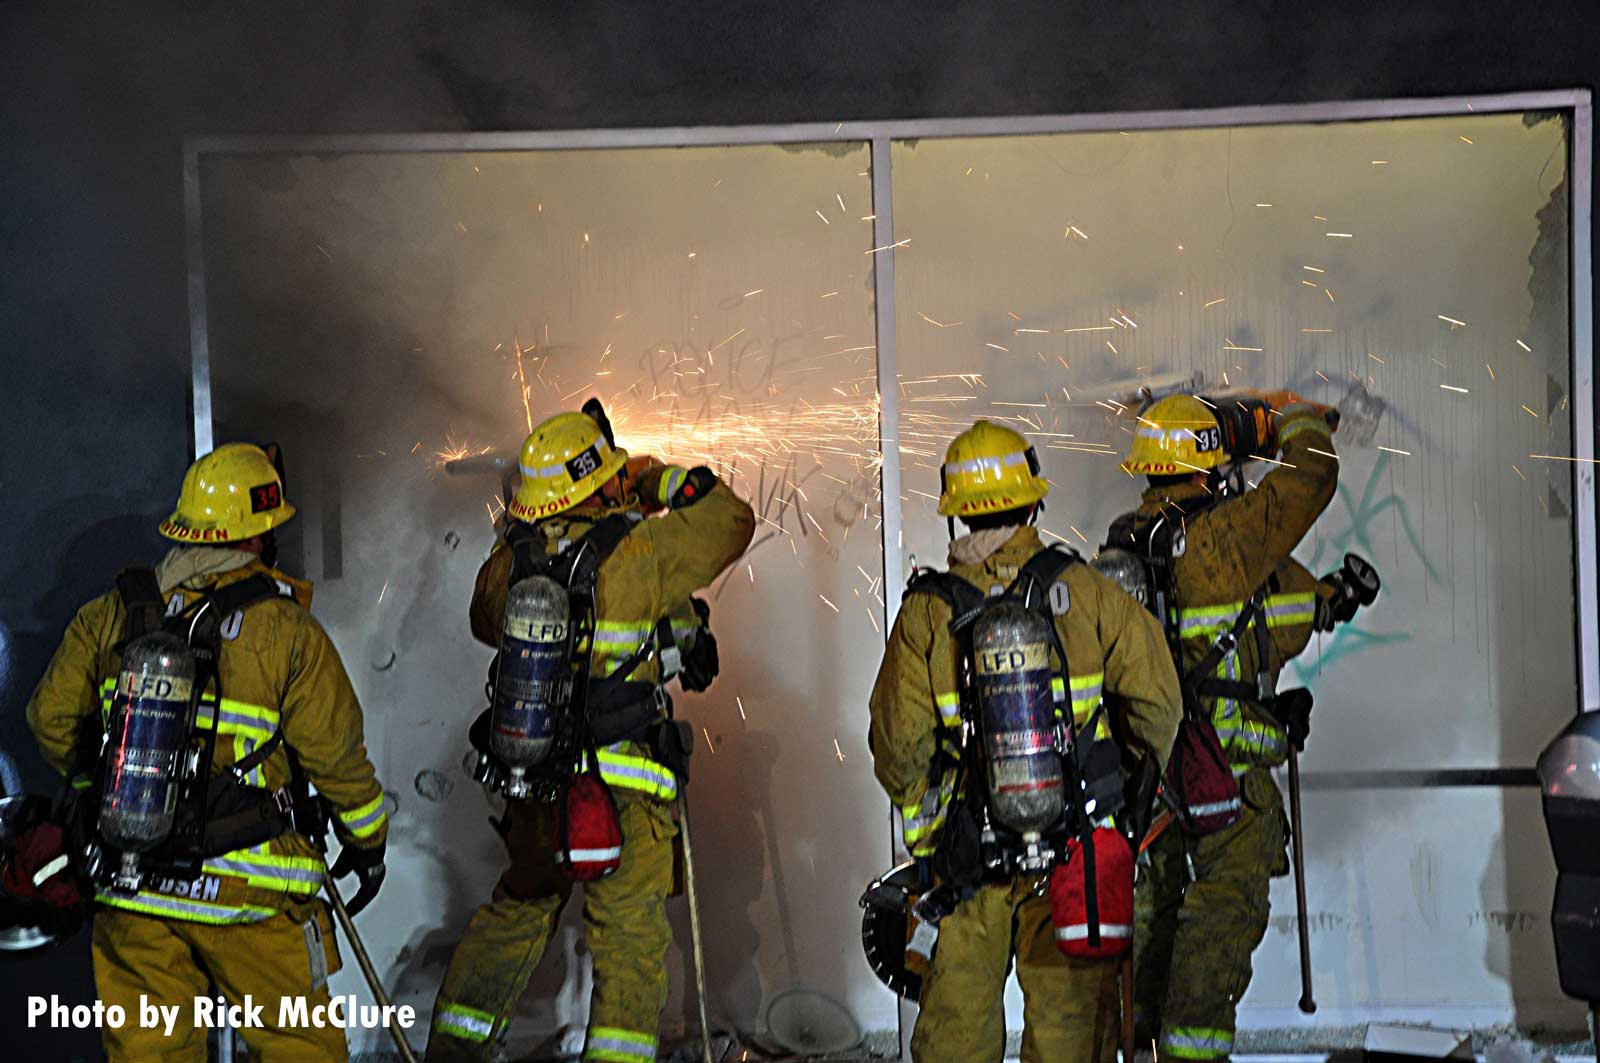 Los Angeles firefighters using saws to force entry